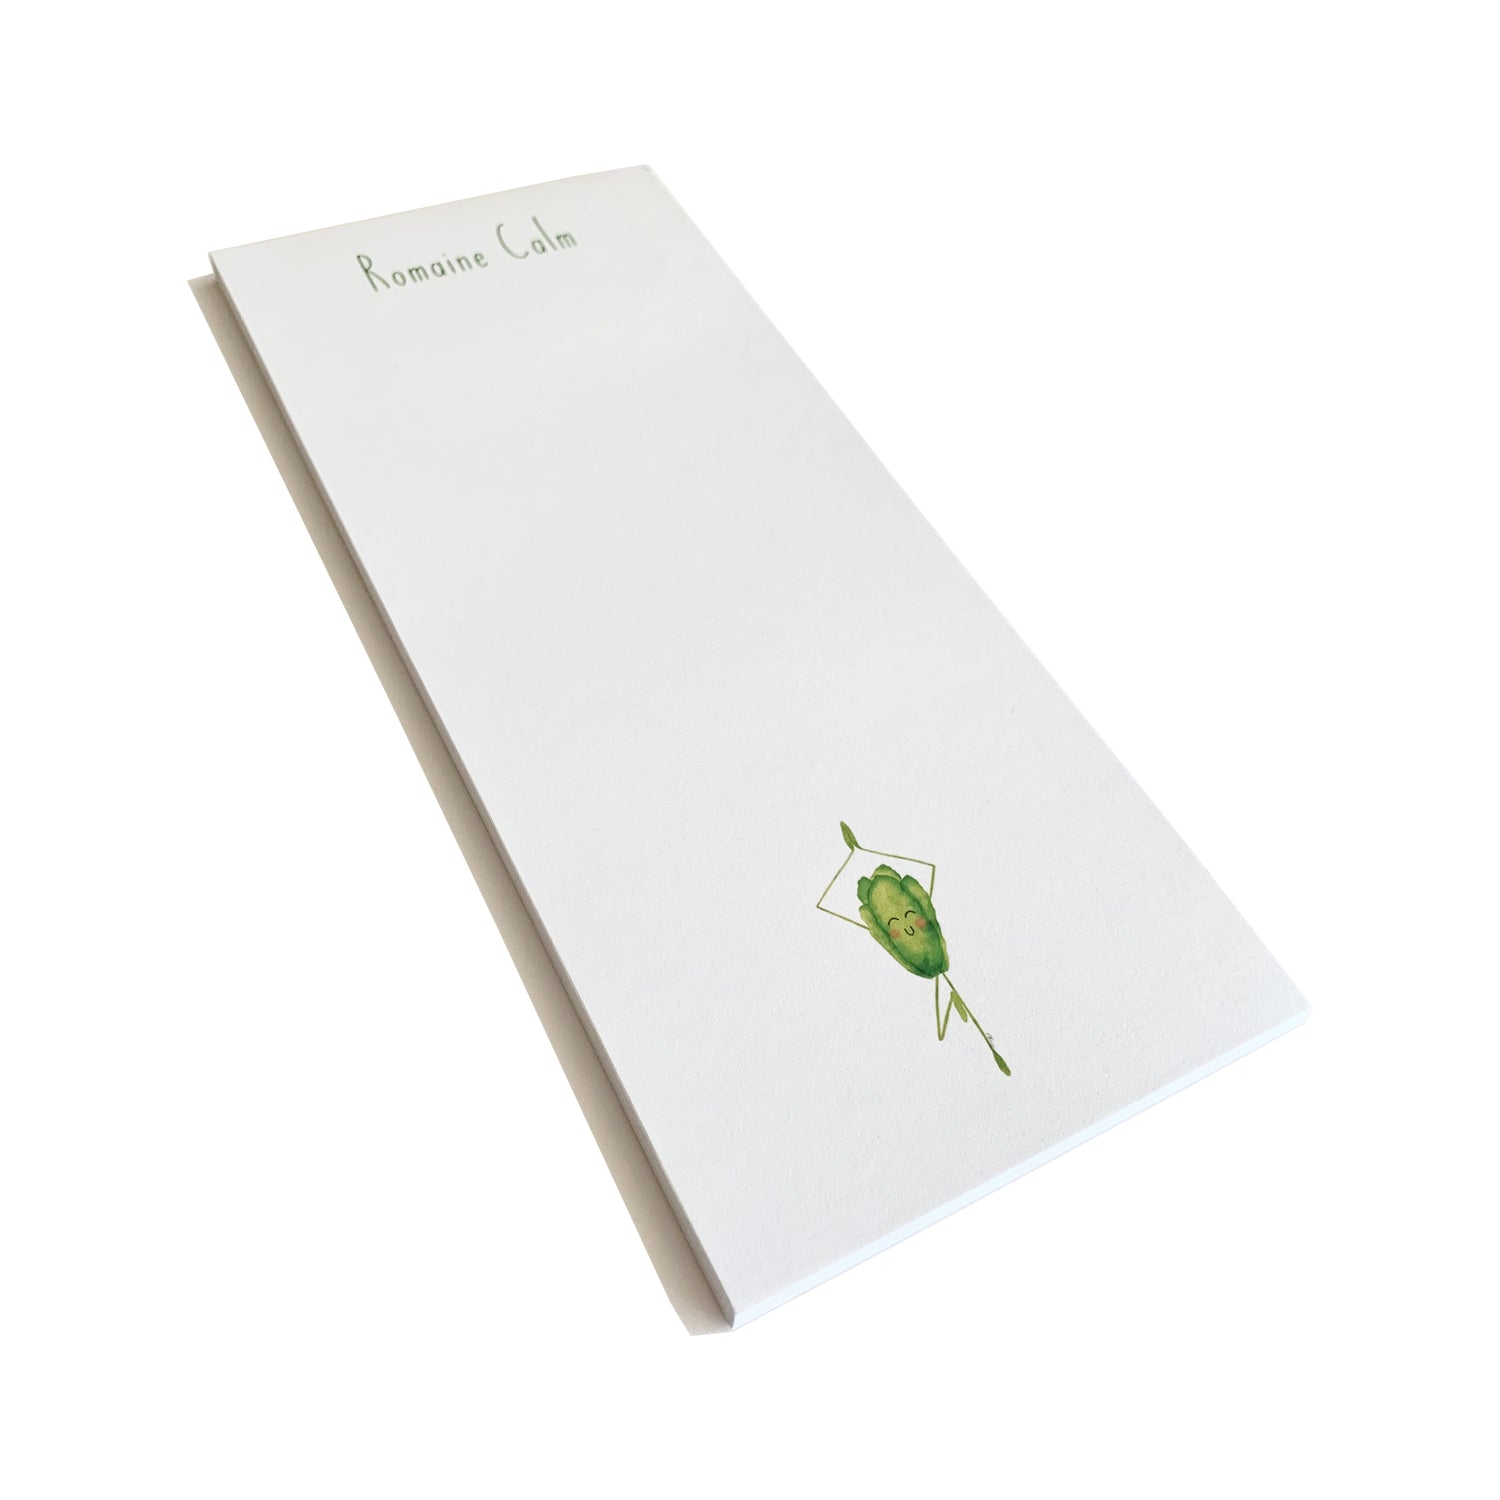 Romaine Calm - list pad